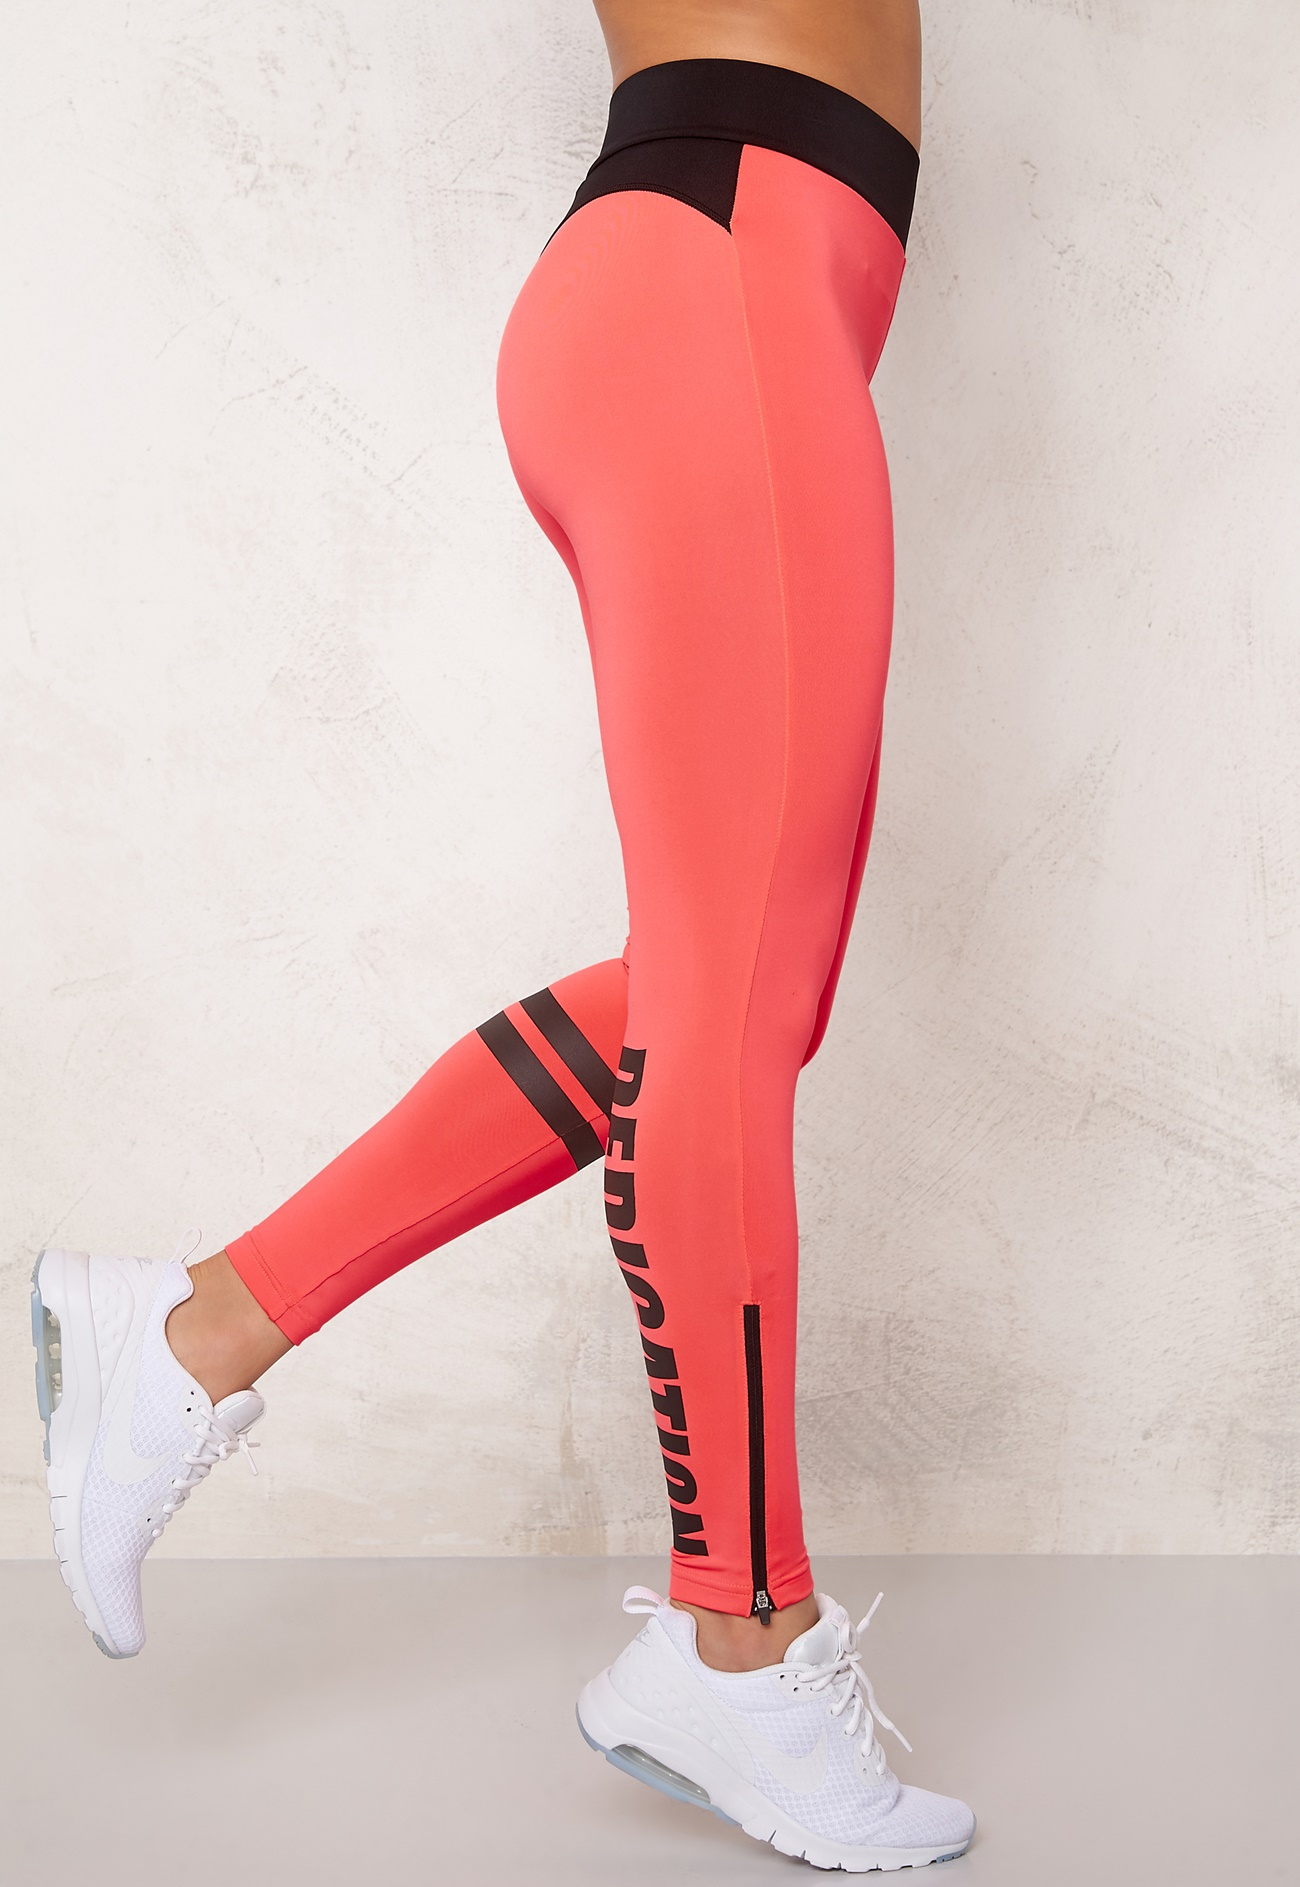 Shop for pink tights online at Target. Free shipping on purchases over $35 and save 5% every day with your Target REDcard.